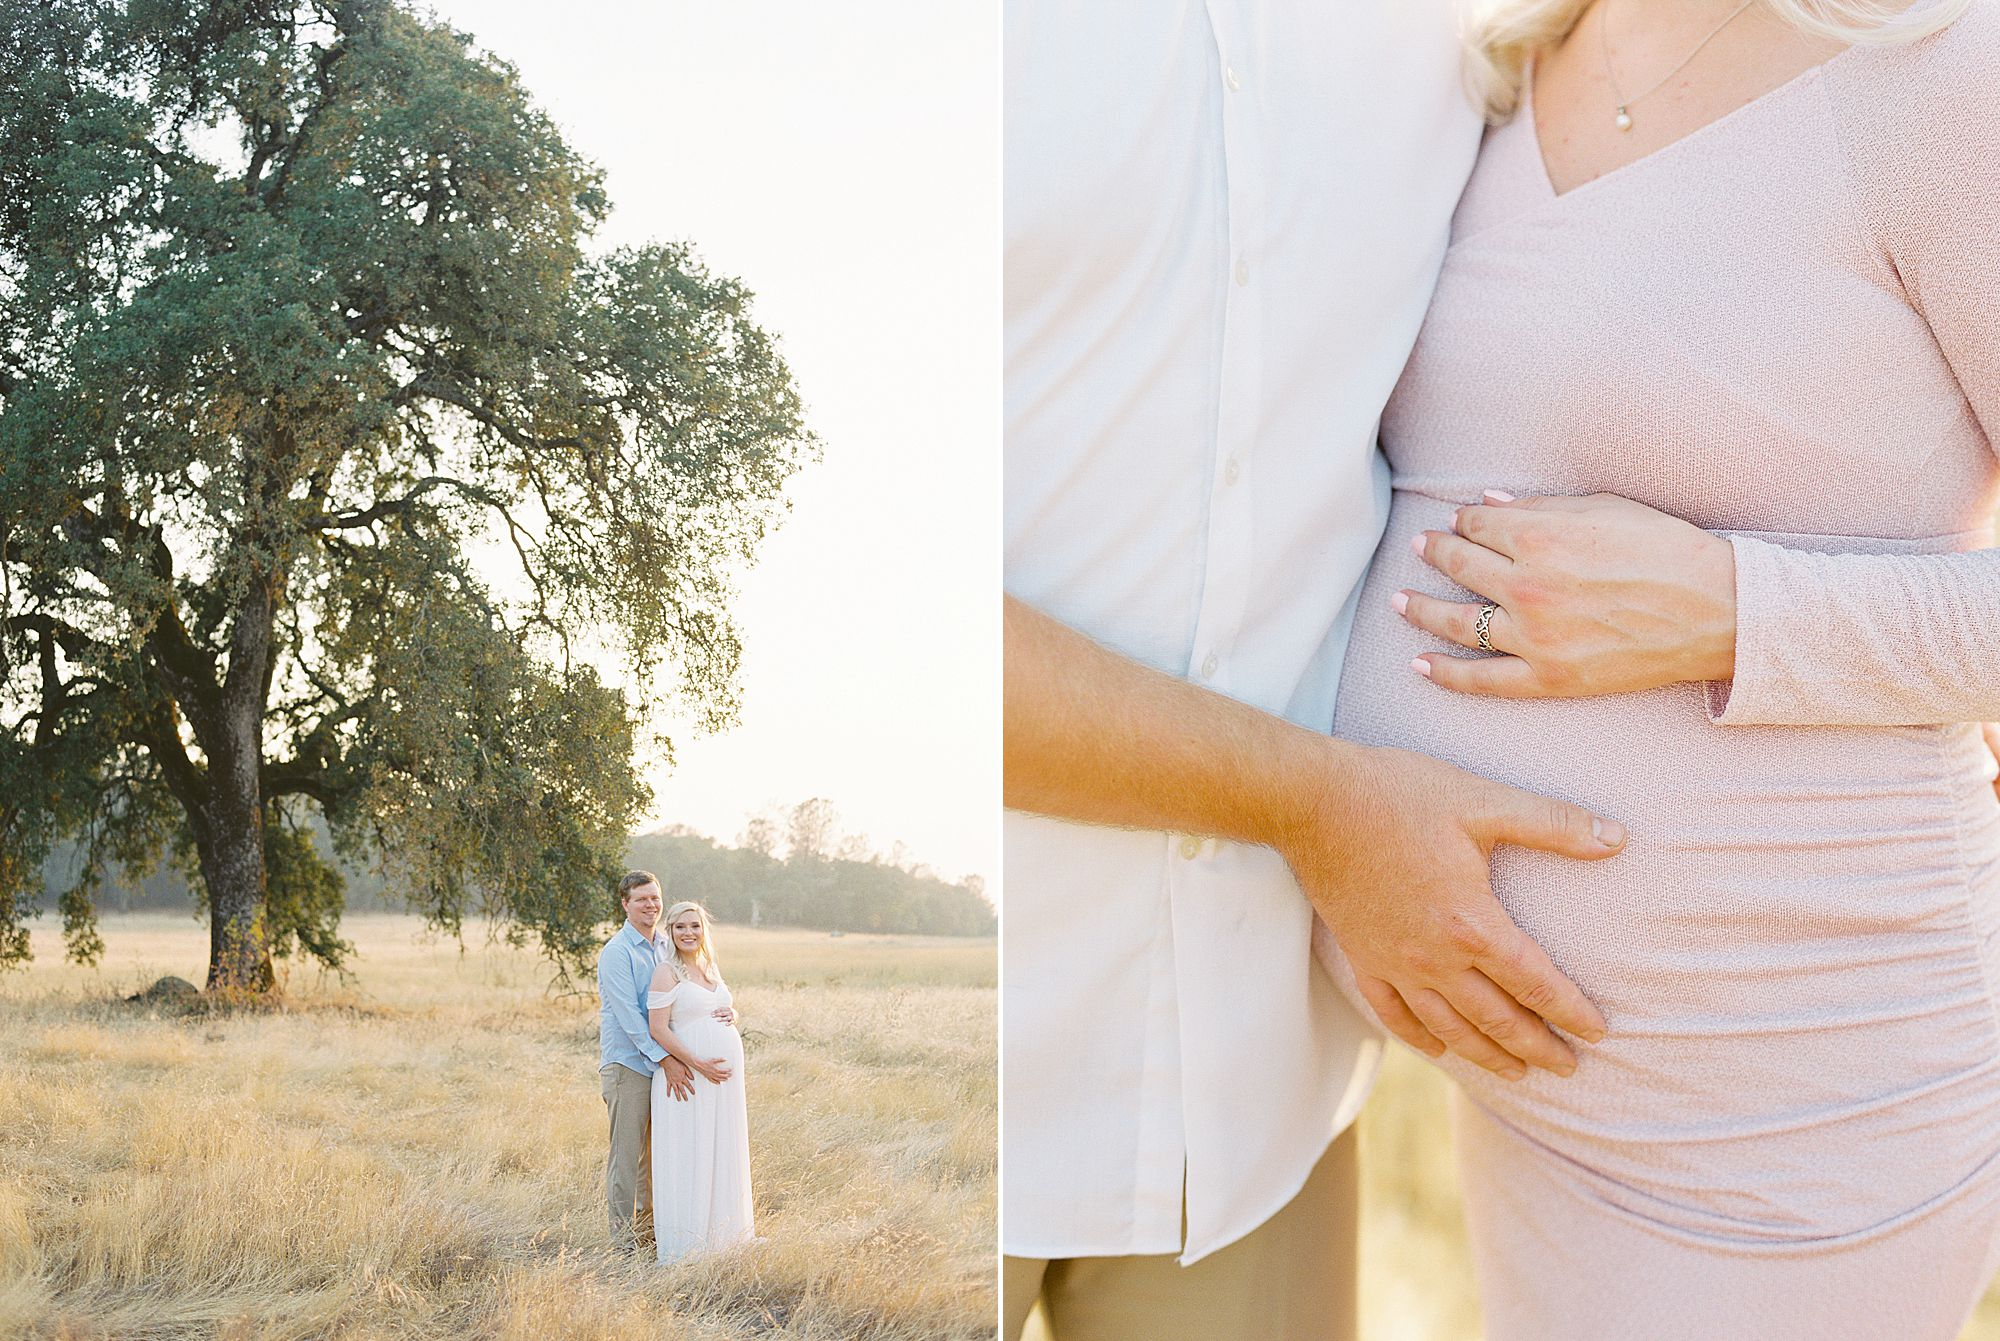 Golden Sacramento Maternity - Hannah and Connor - Ashley Baumgartner - Sacramento Maternity Photographer_0012.jpg